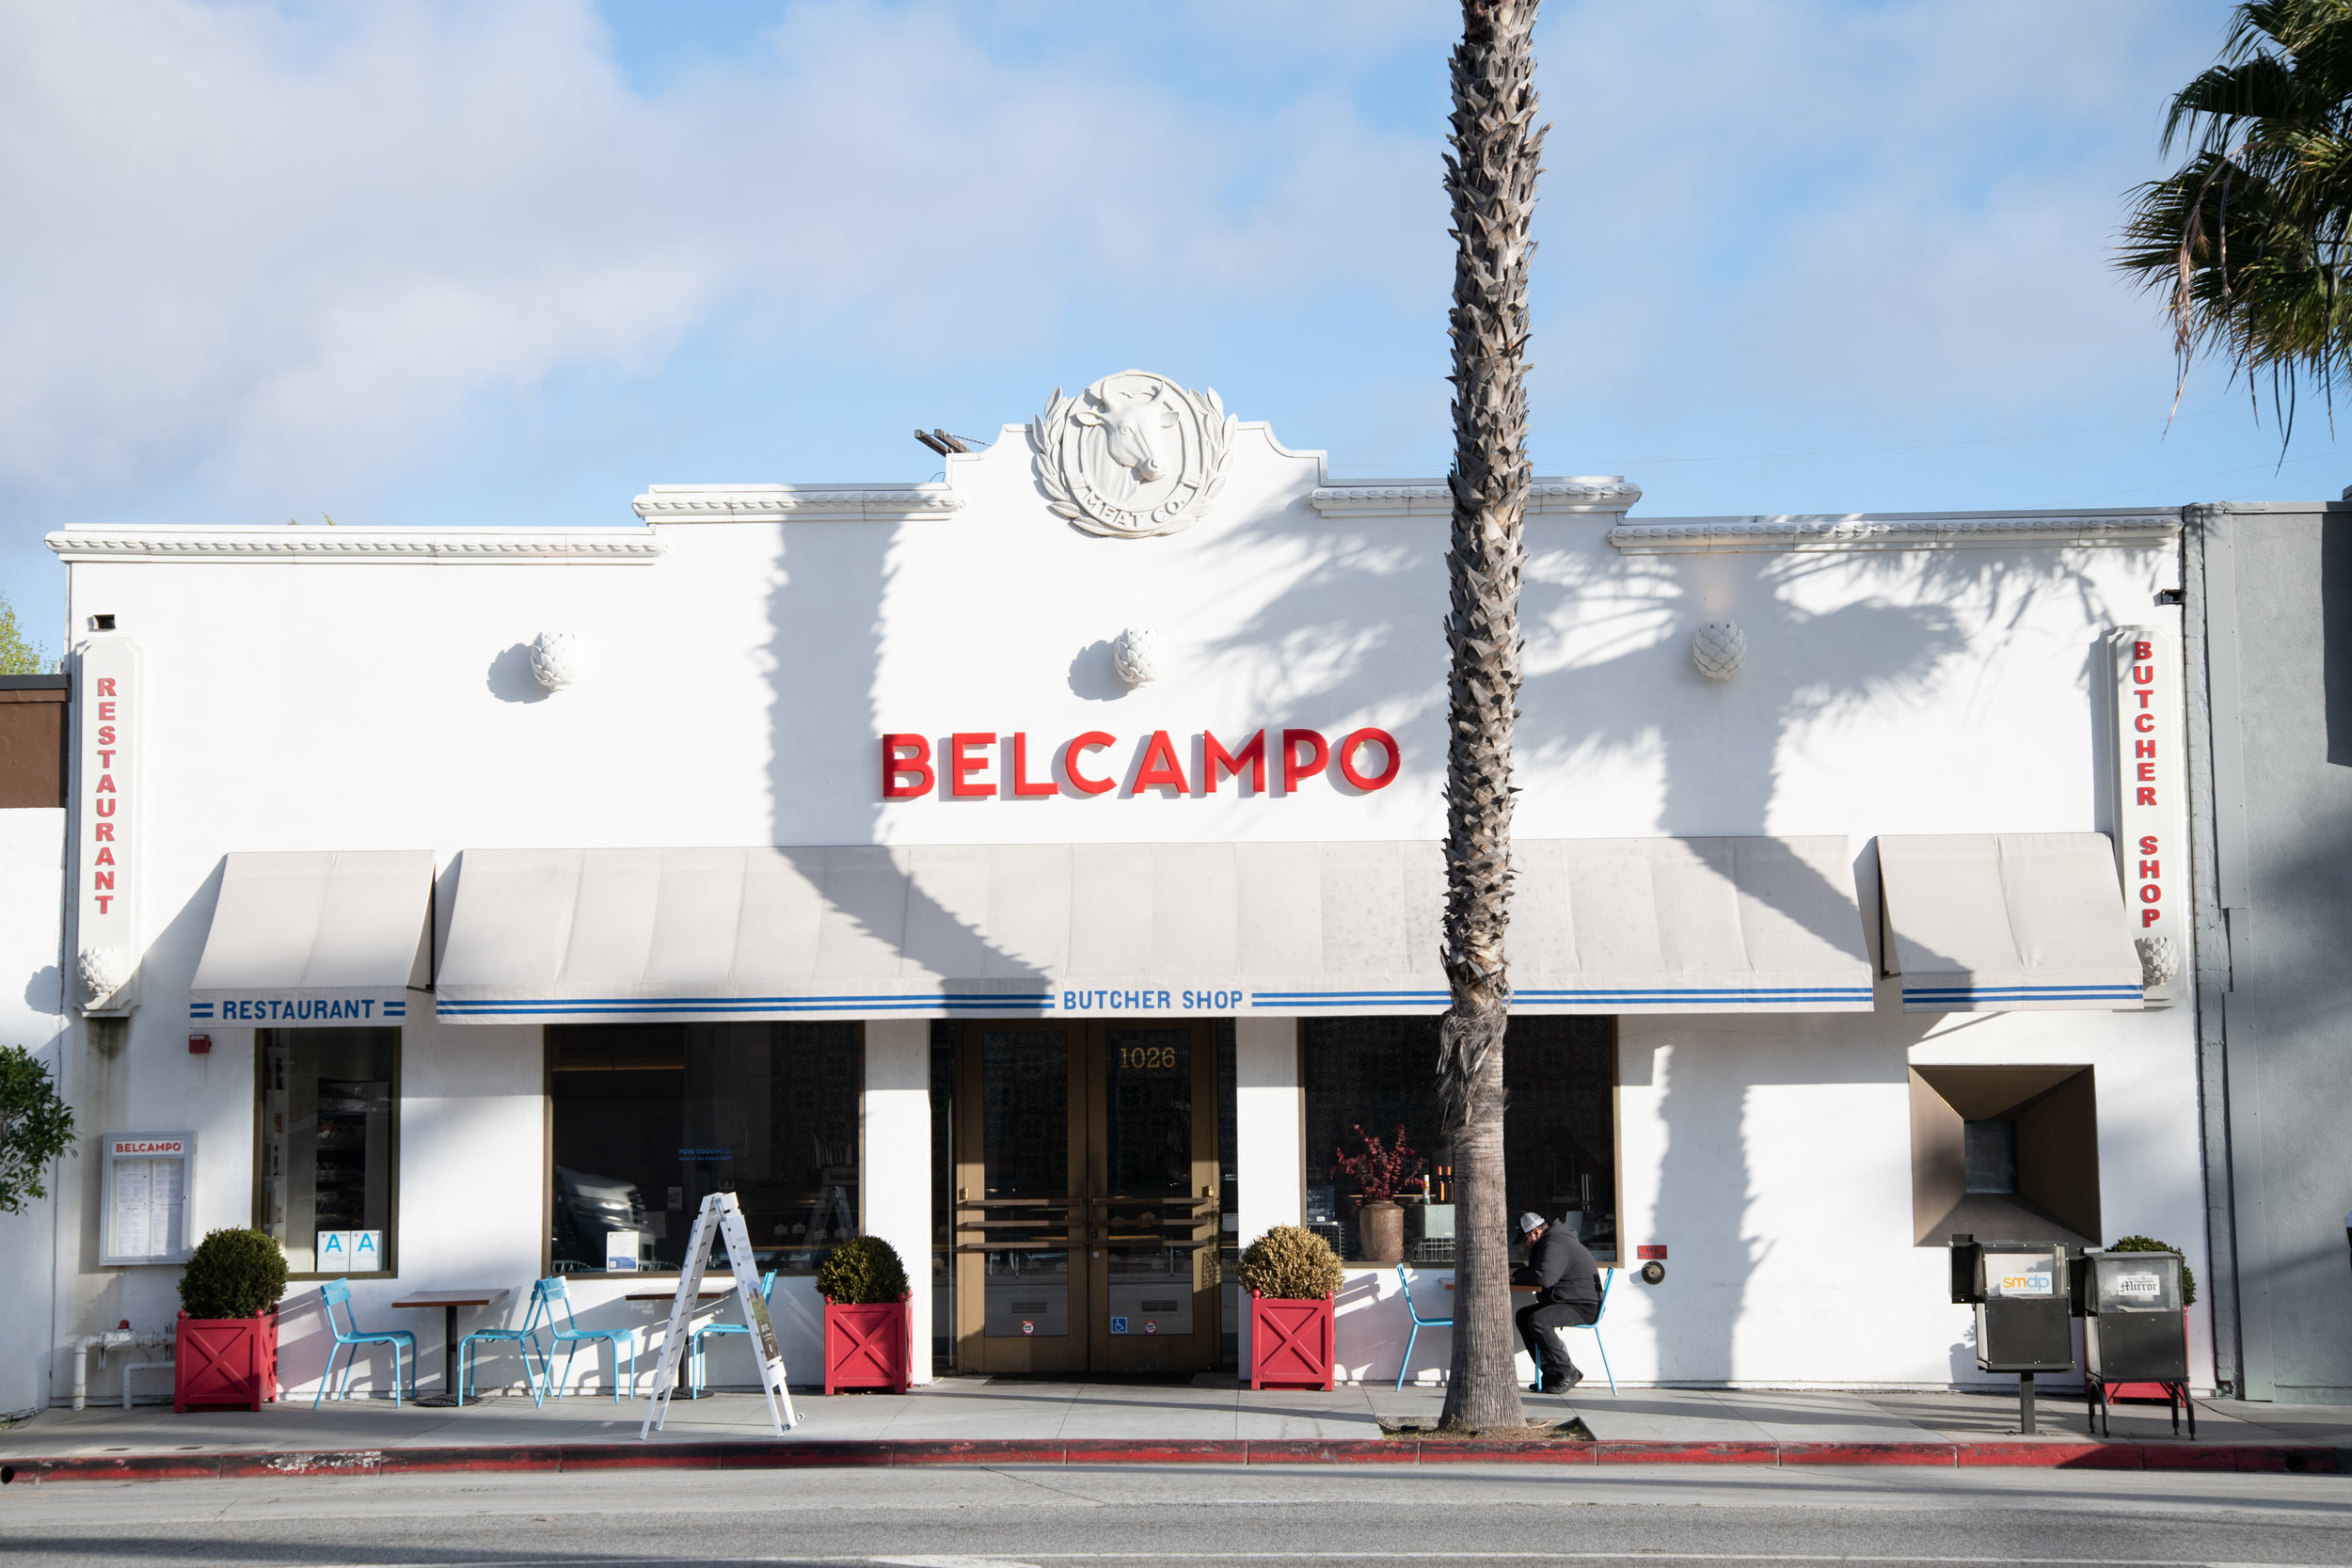 Belcampo Meat Company butcher shop and restaurant, Thursday, March 21, 2019, on Wilshire Blvd. in Santa Monica, Calif. This is one of the company's multiple locations. (Nicole Haun/ The Corsair)